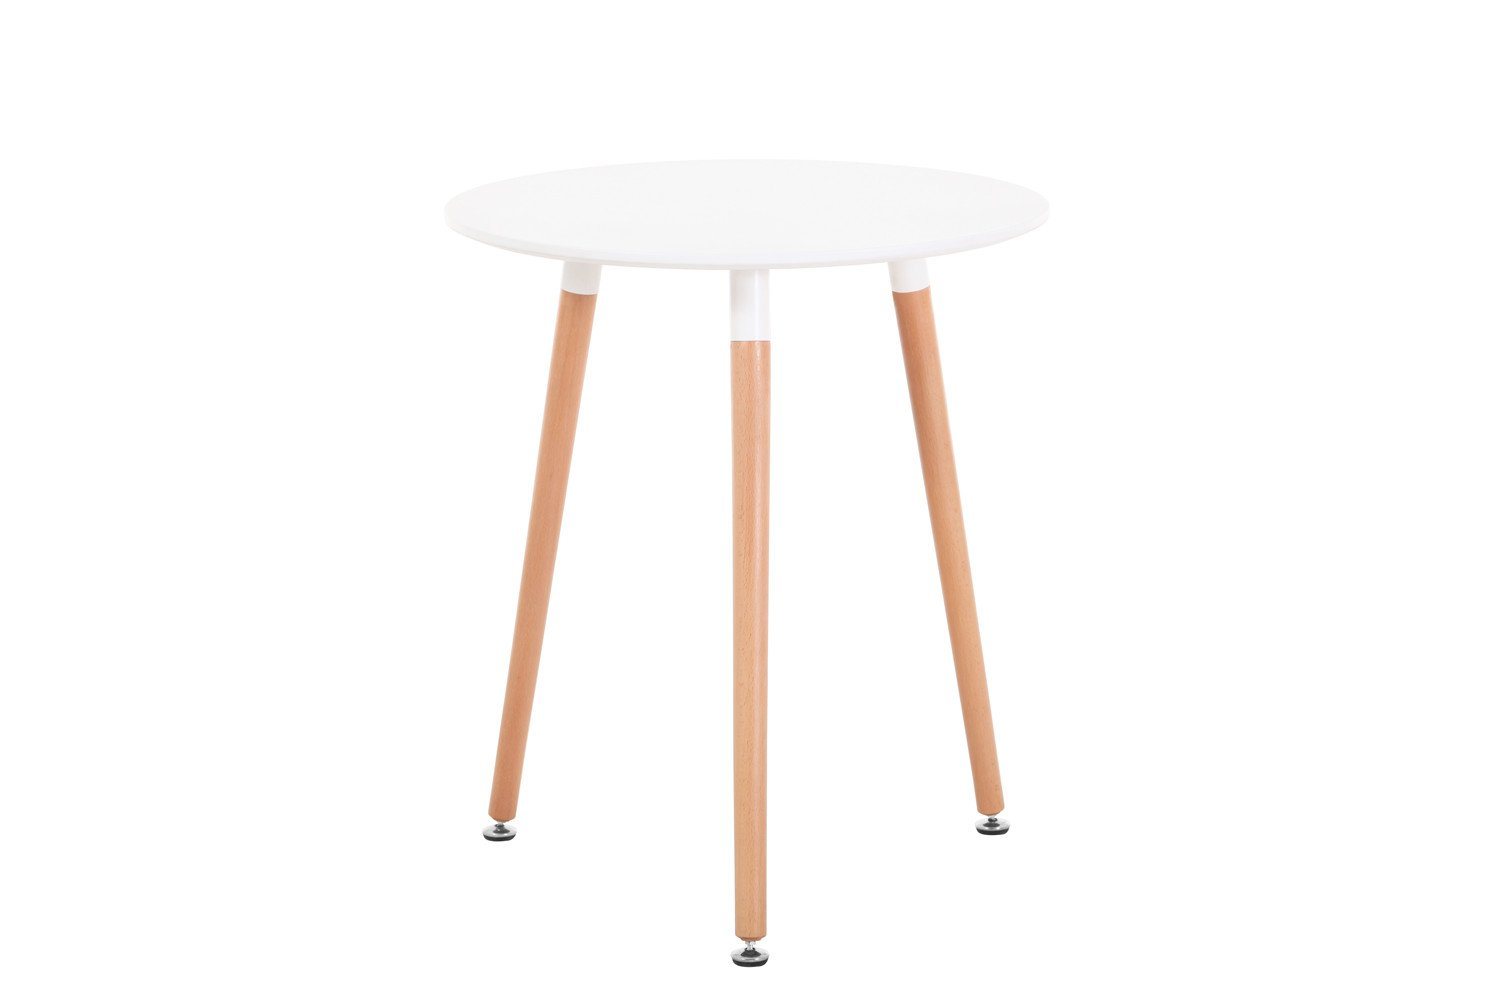 Creation Yusheng Modern Eames Style Circular Dining Table, living room table with Wooden Legs, White